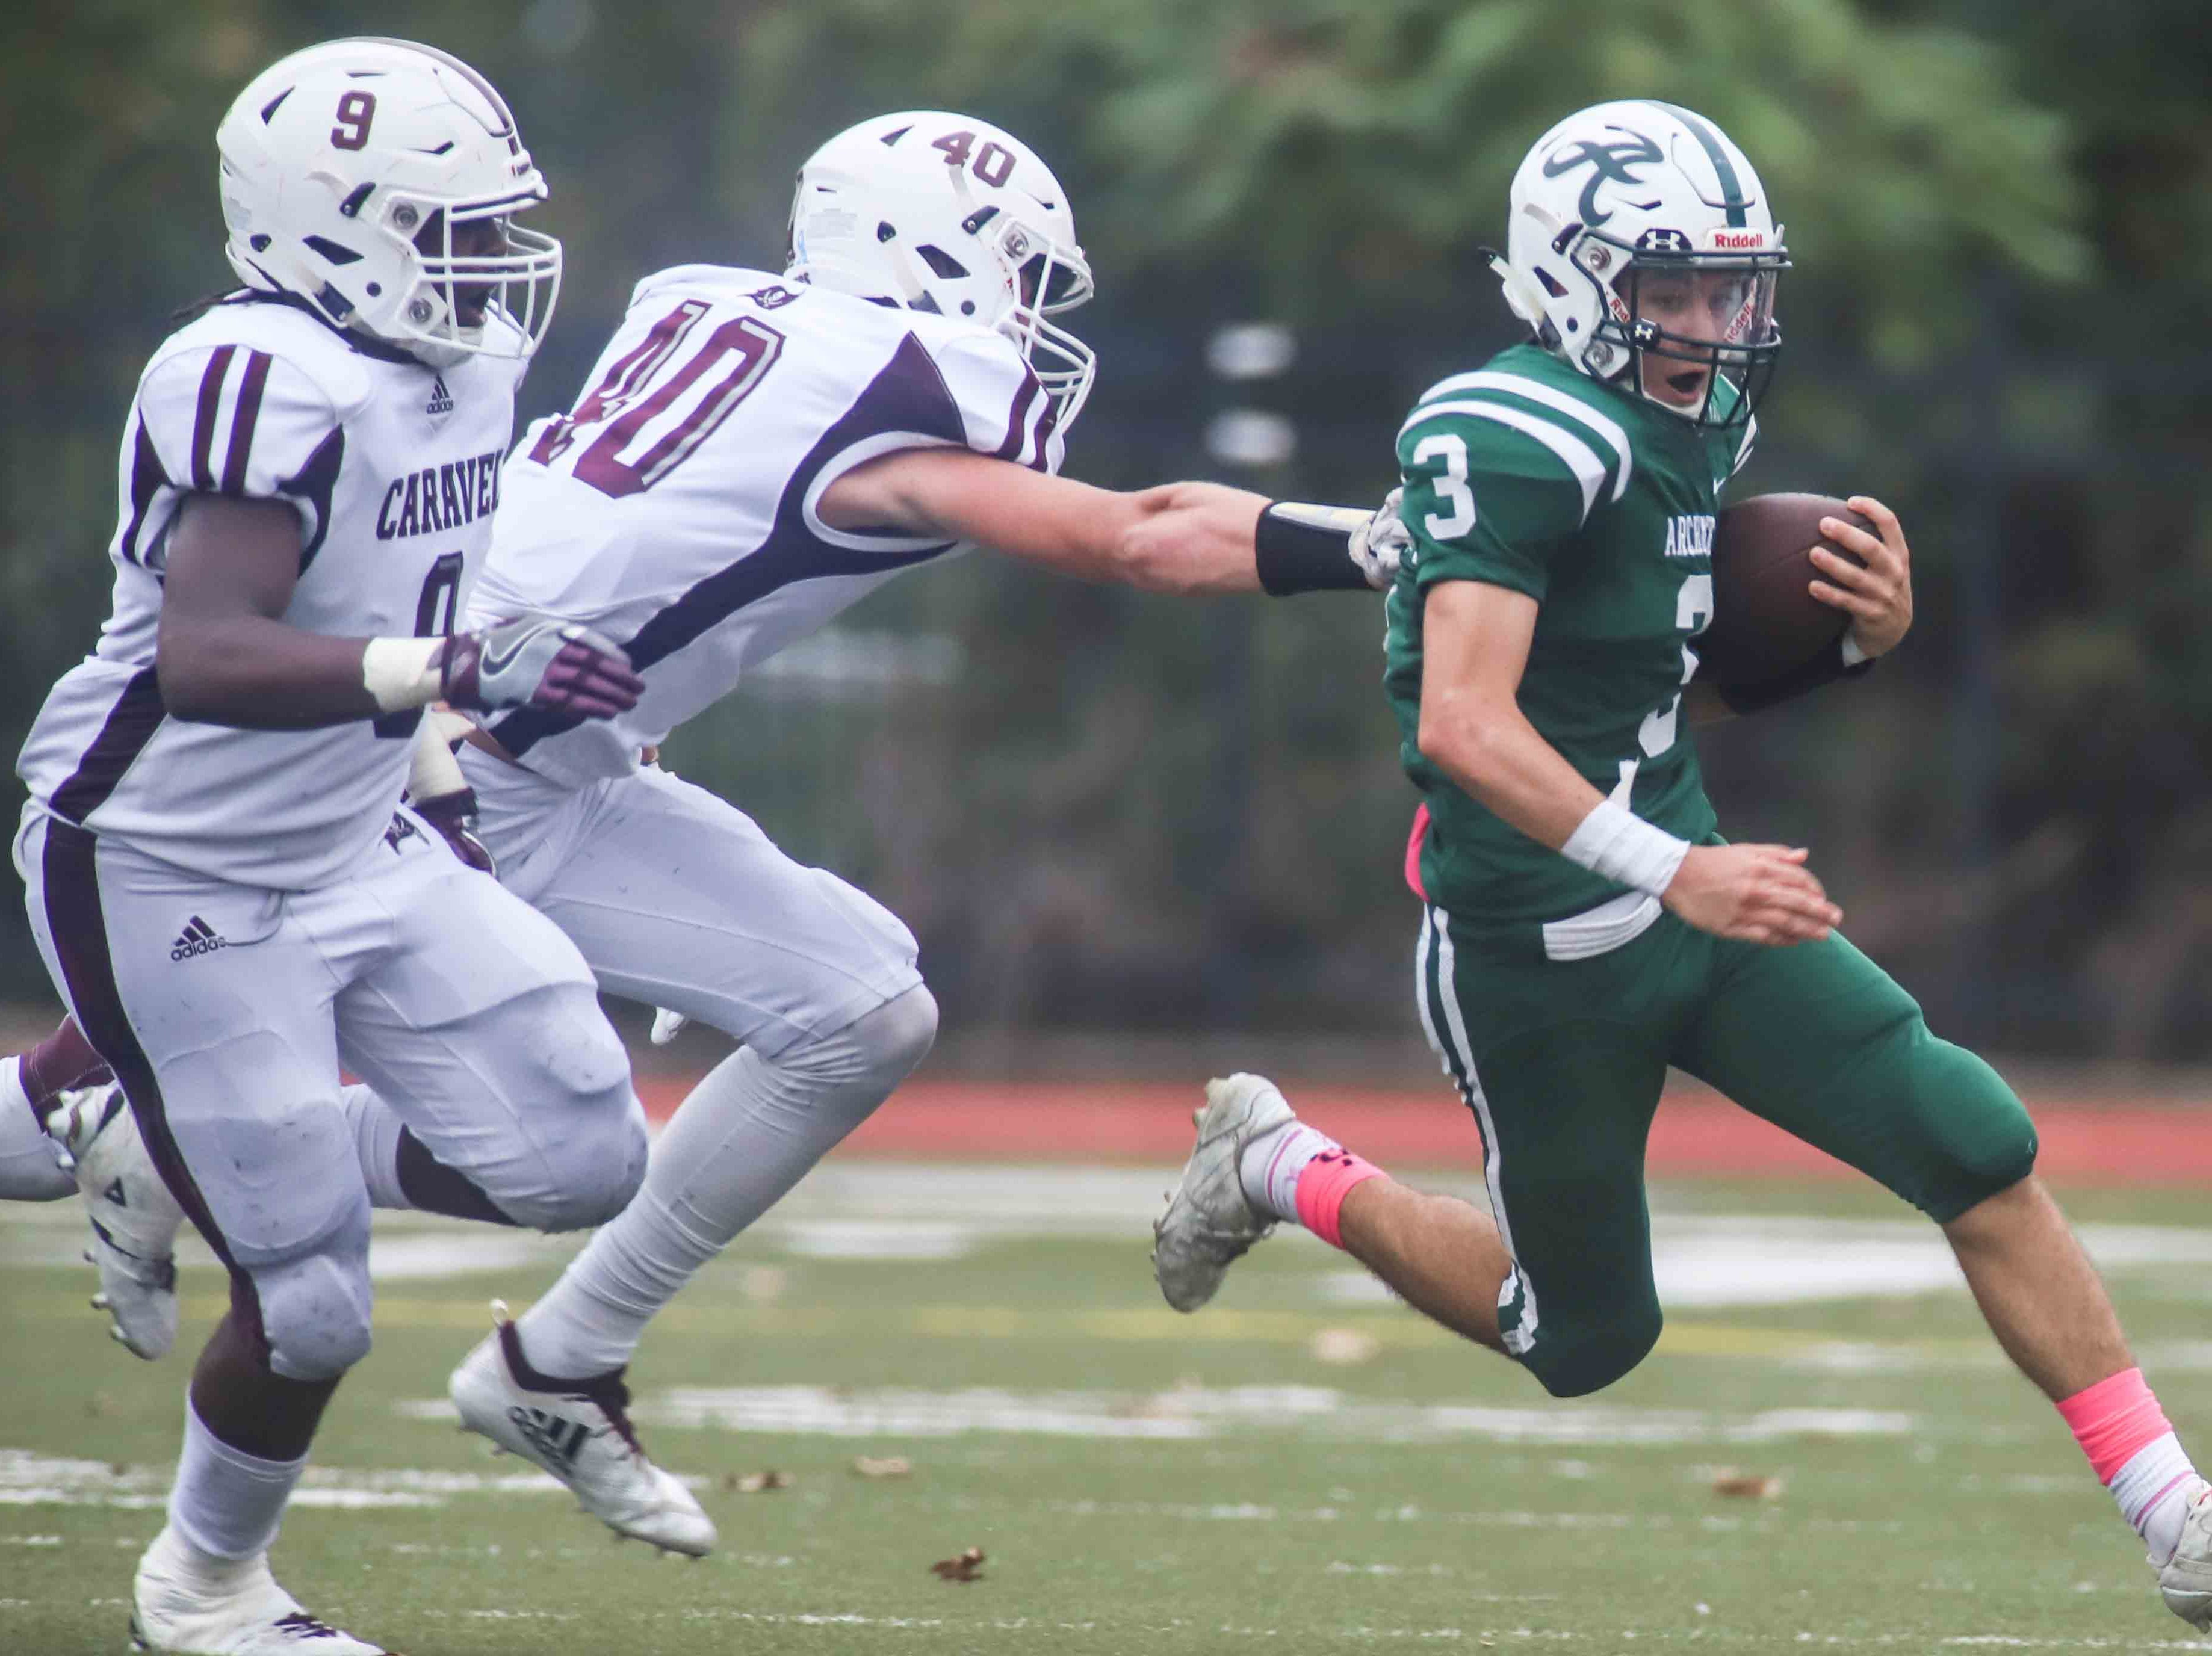 Archmere running back Vincent Iannello (3) gains positive yards during a week five DIAA game between Archmere Academy Auks and Caravel Academy, Saturday, Oct. 06, 2018, at Coaches Field on the campus of Archmere Academy in Wilmington, DE.